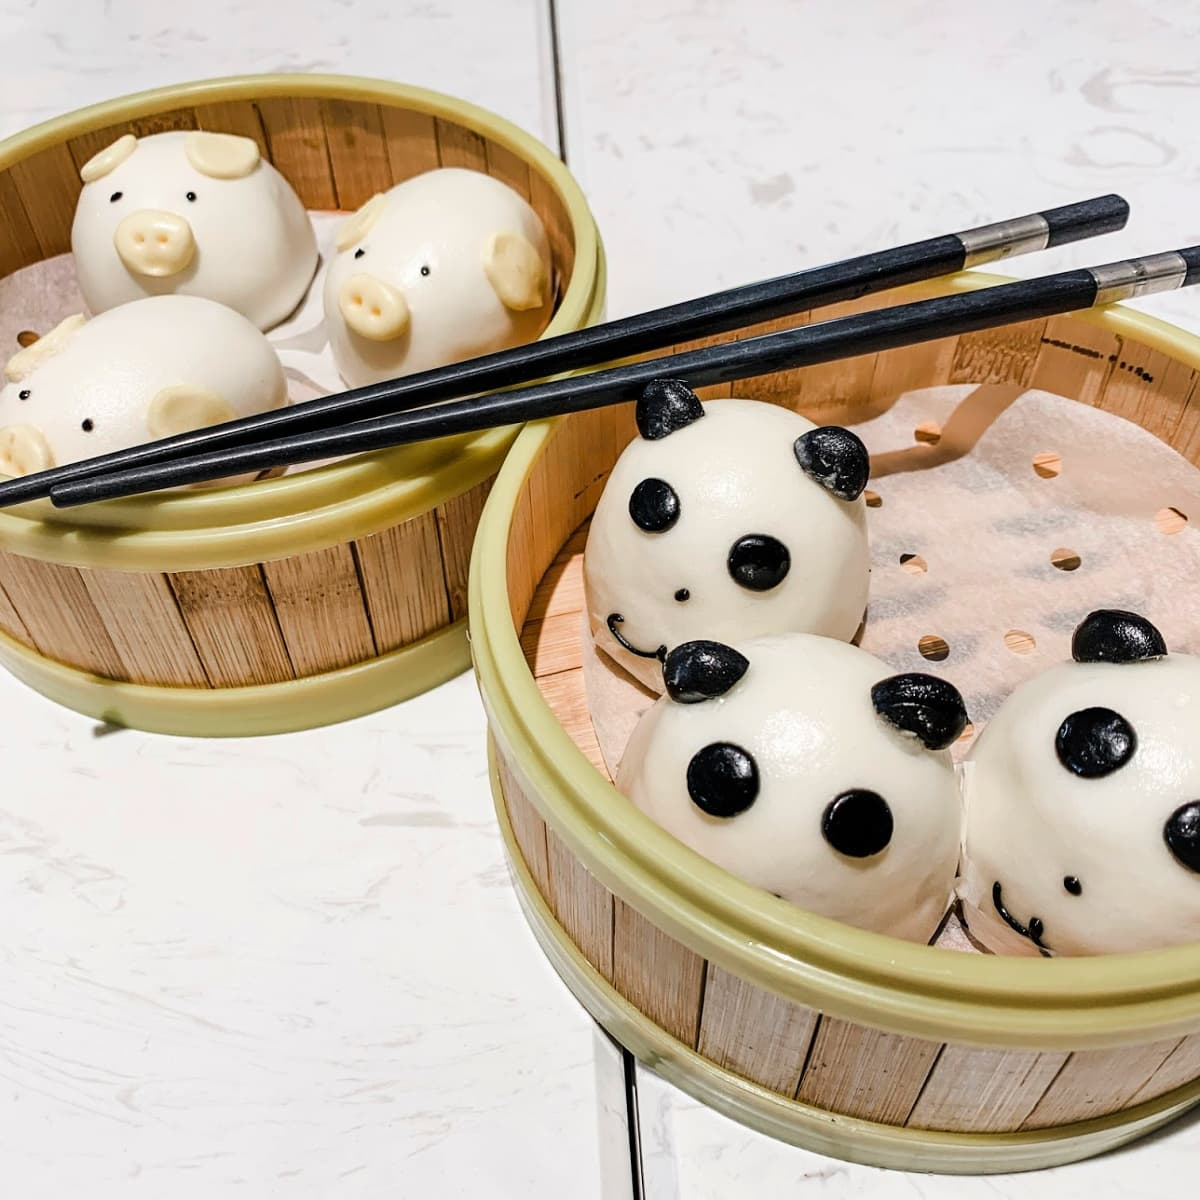 Animal-shaped red bean steamed buns from Crystal Jade in Disneytown Shanghai Disneyland